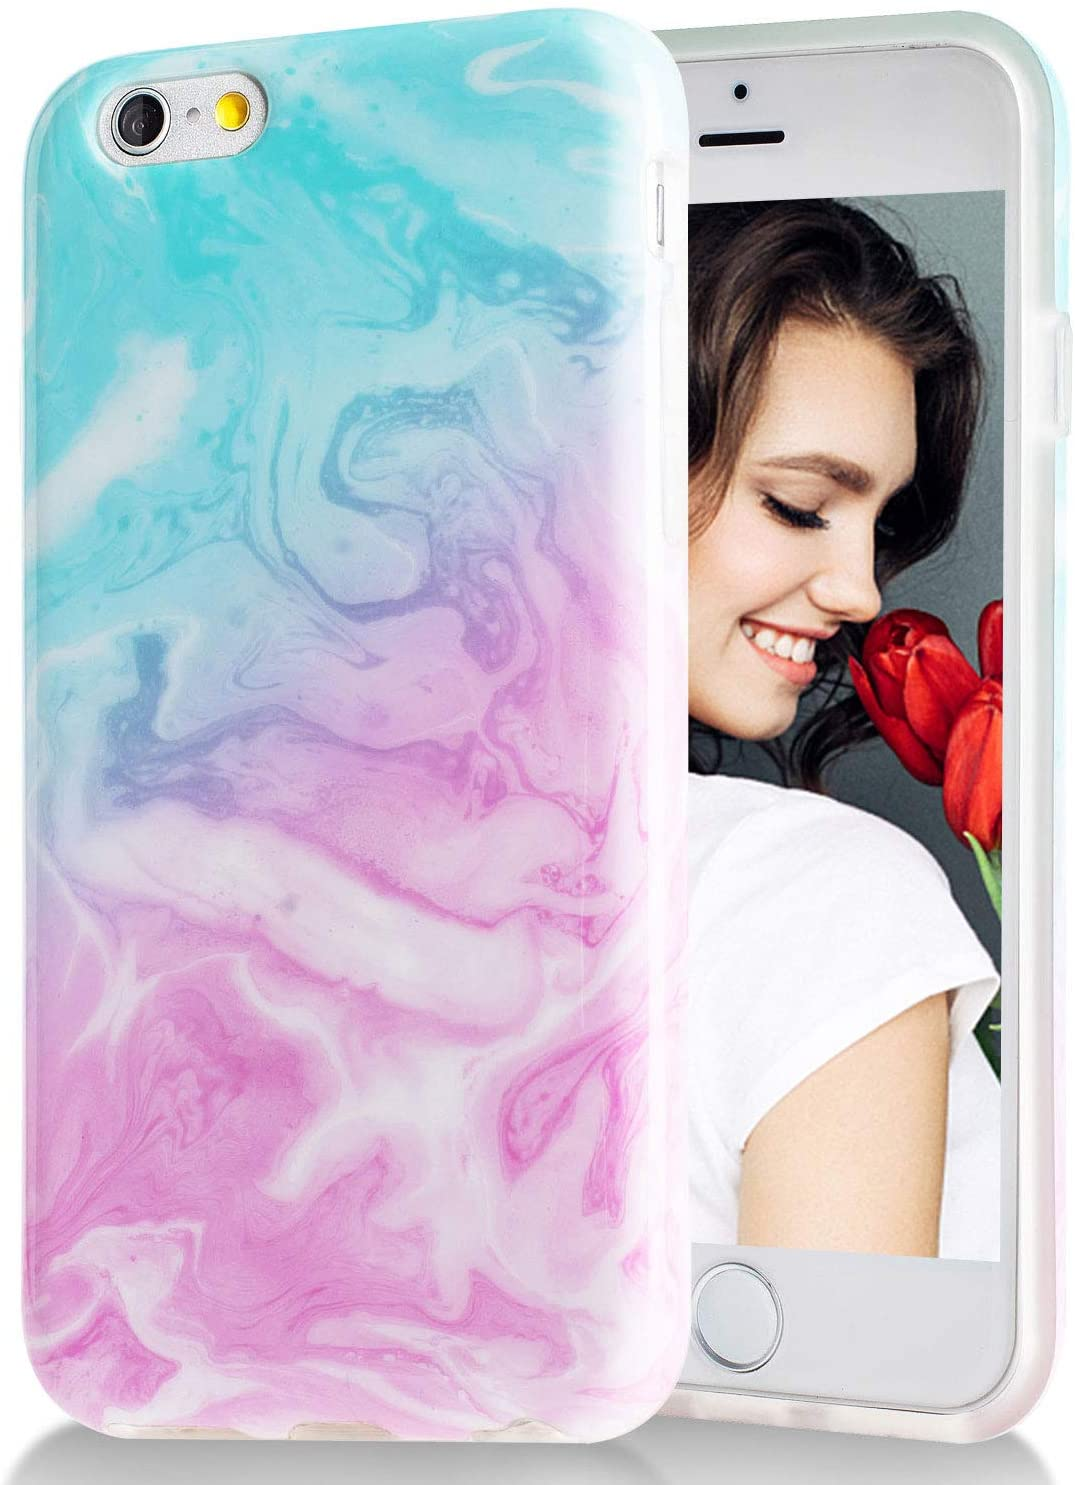 iPhone 6 Case,iPhone 6s Case Green Pink Marble,Slim Soft Flexible TPU Marble Pattern Cover for Apple iPhone 6/6s